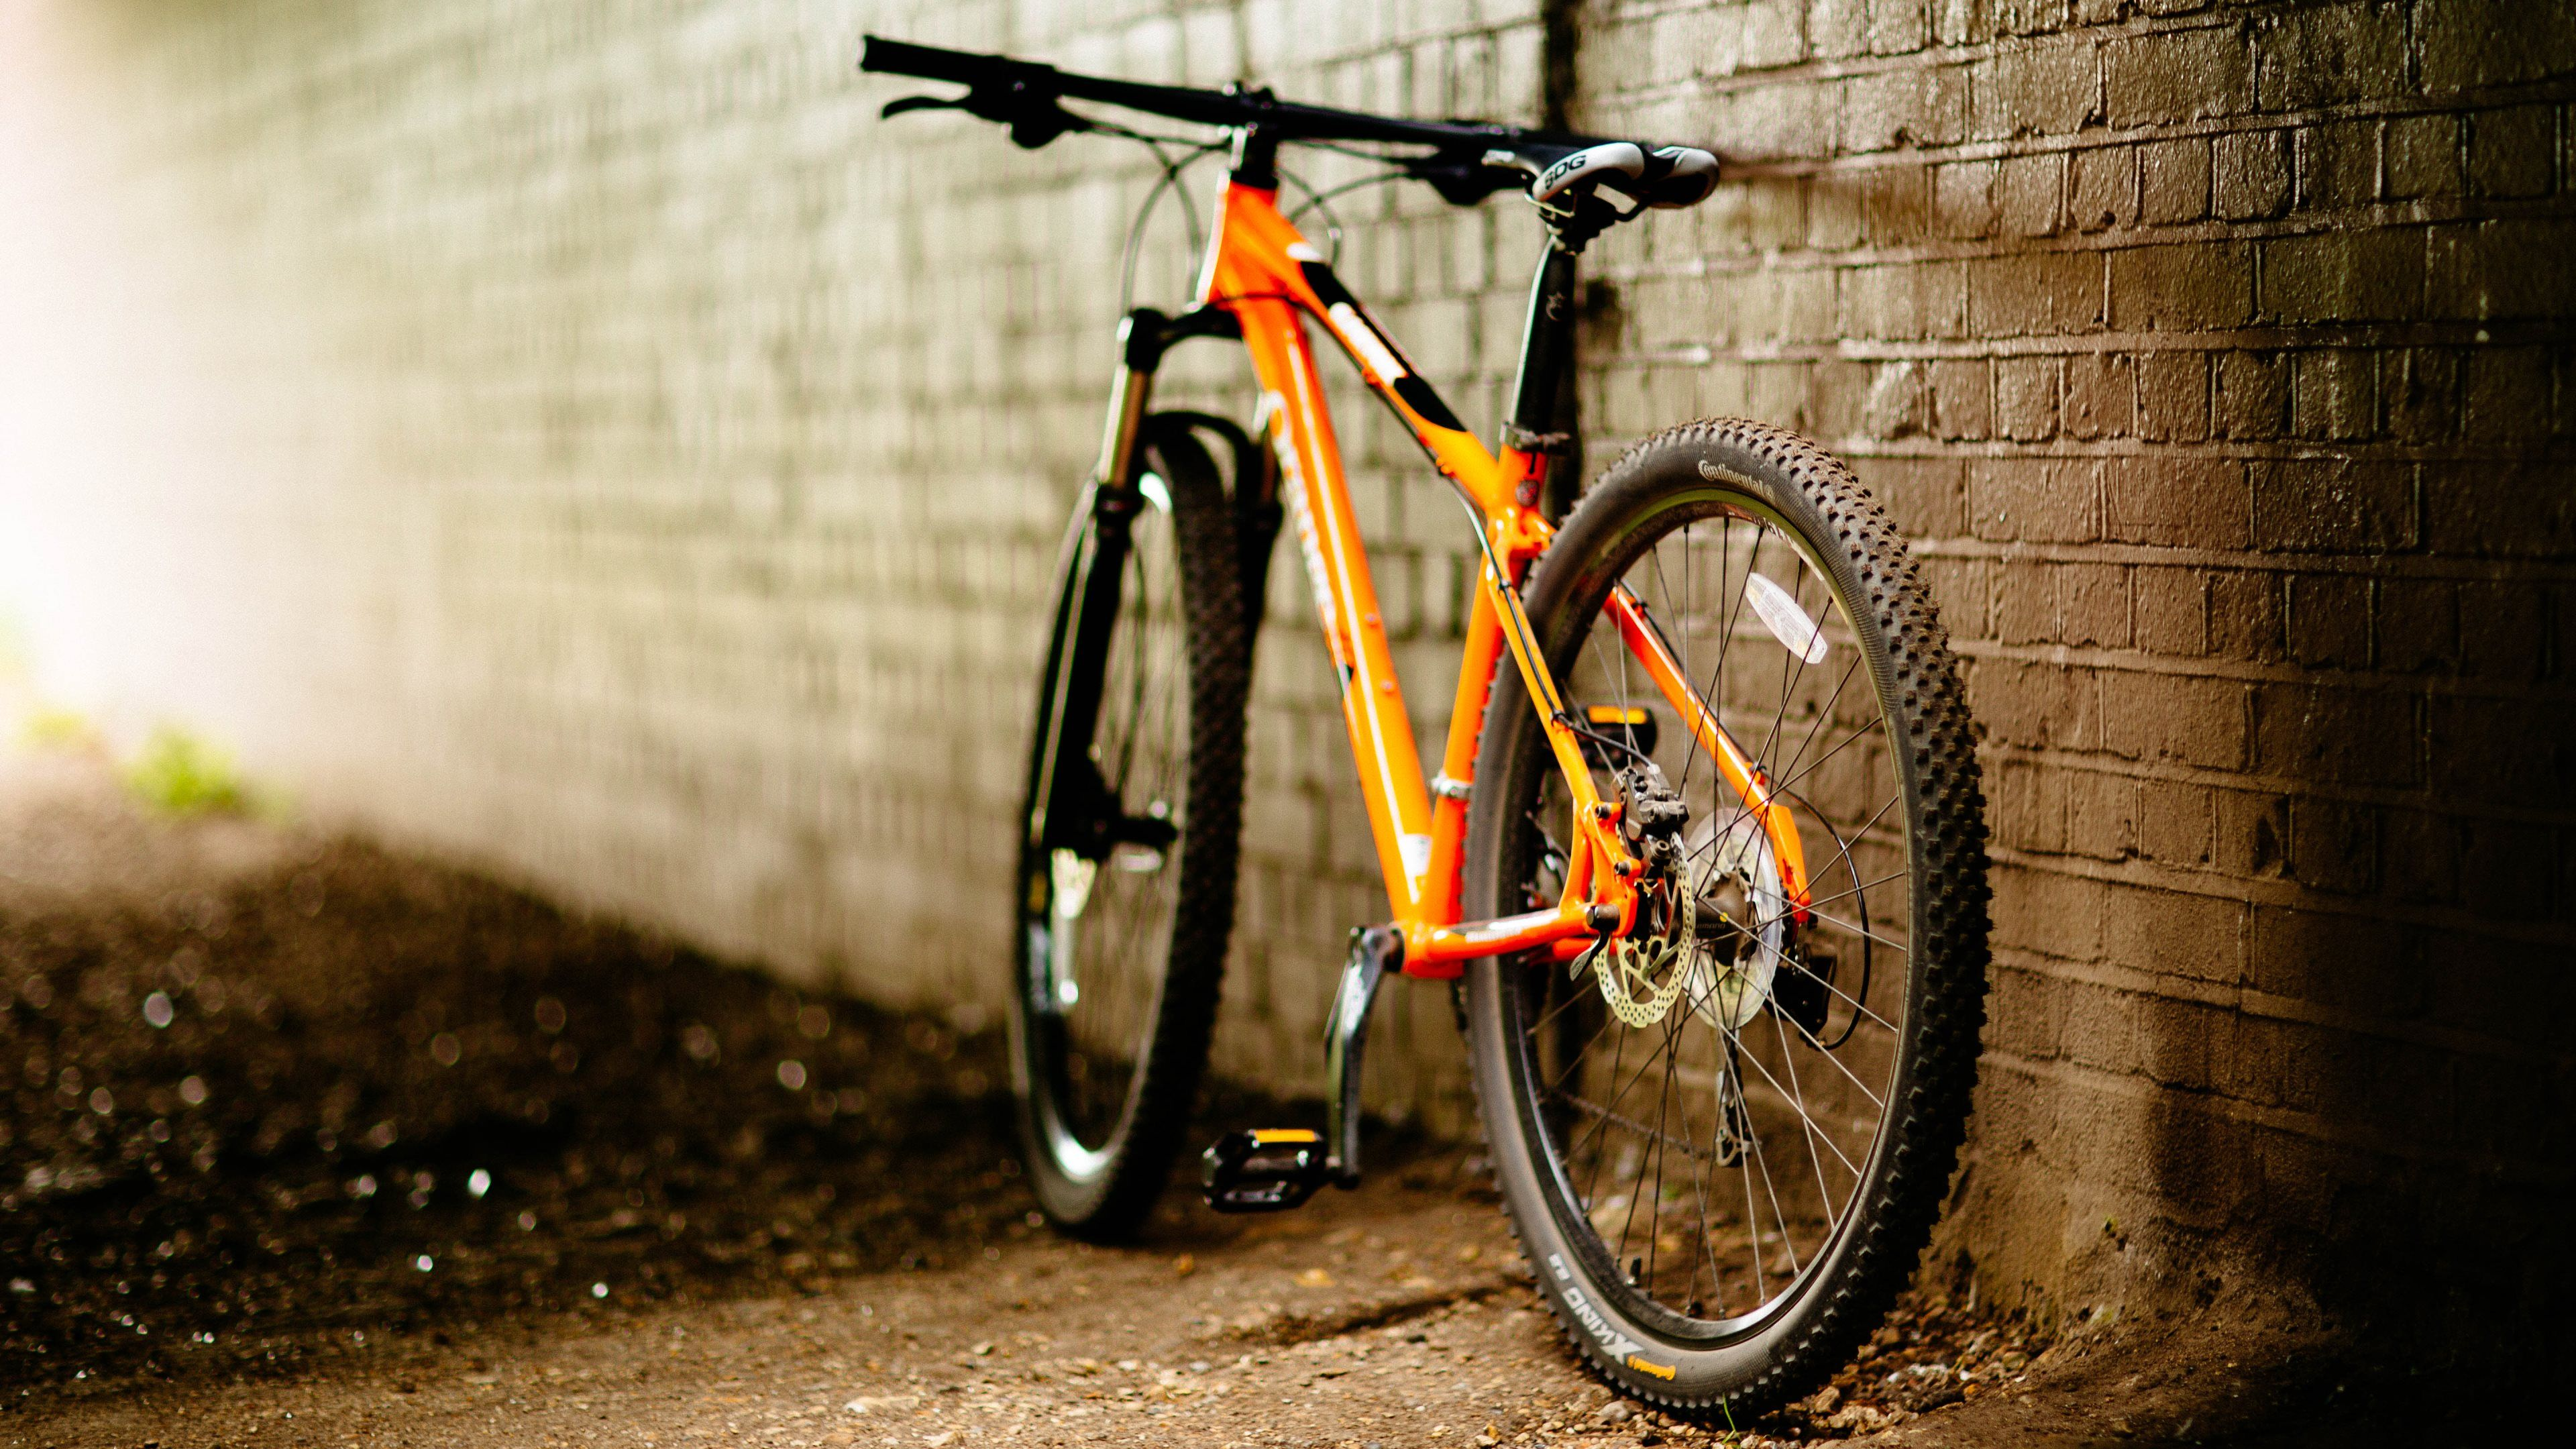 Bicycle Hd Wallpapers Backgrounds Wallpaper Velosipedy Pinterest